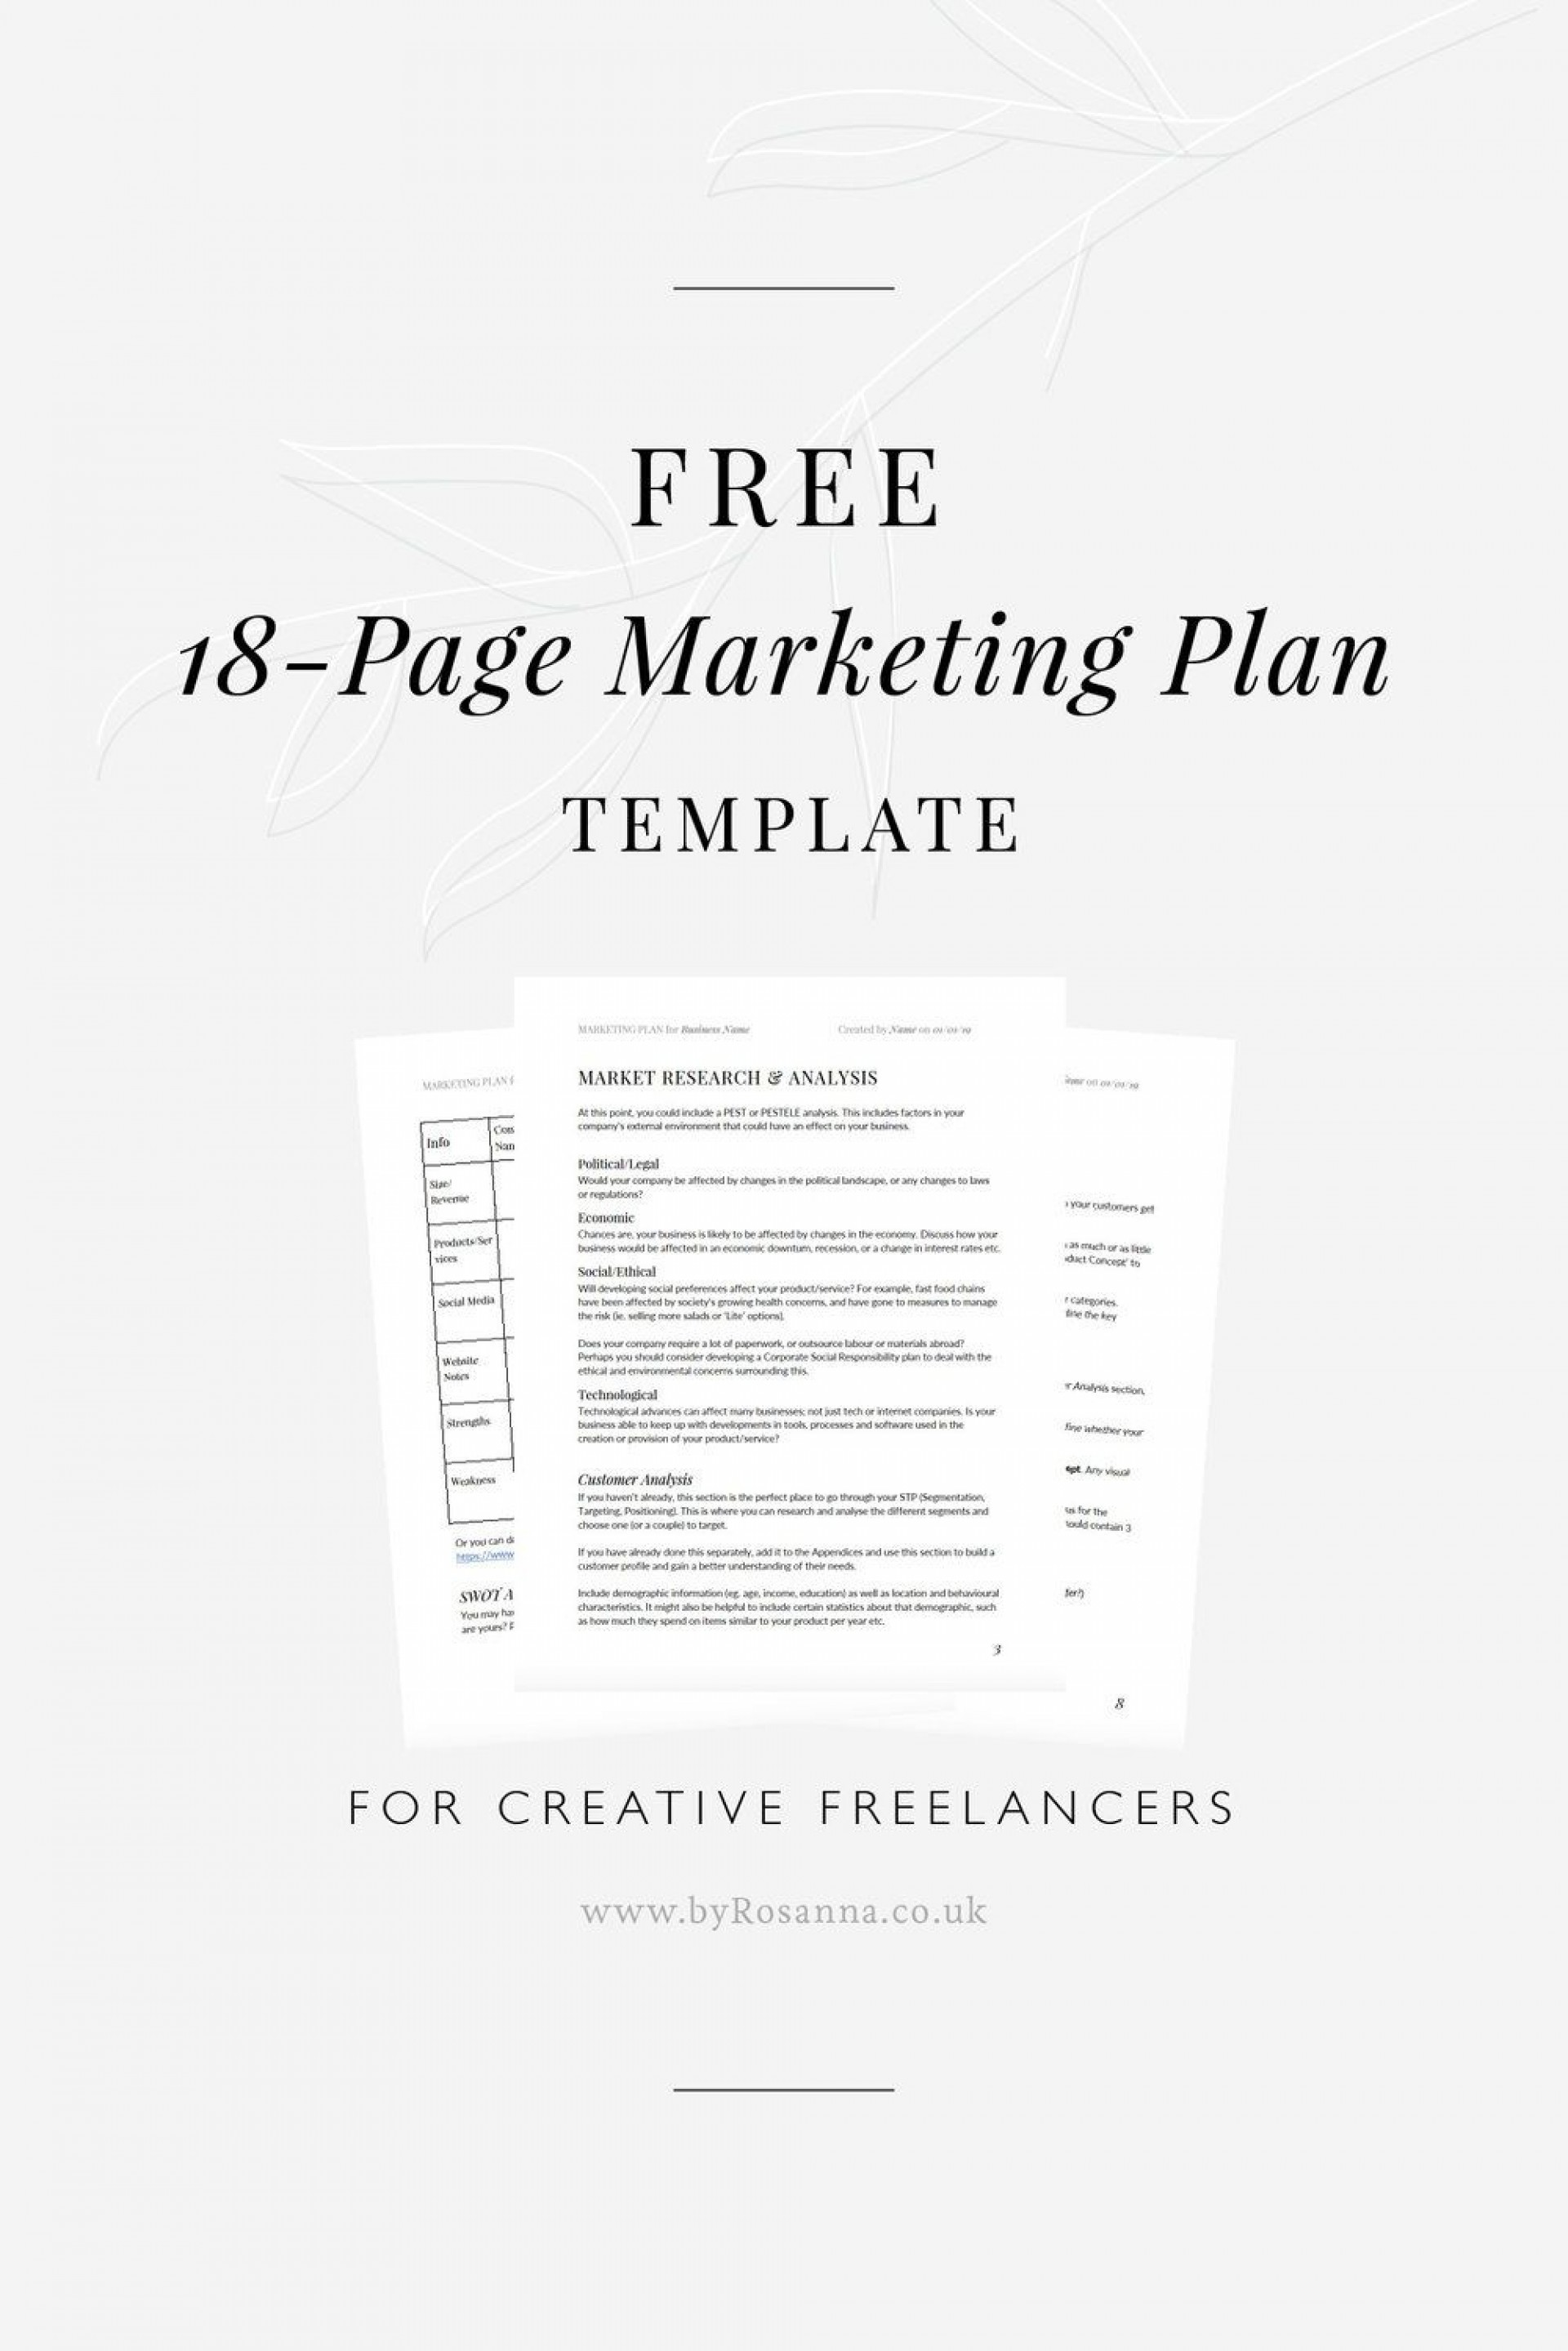 006 Unforgettable Marketing Busines Plan Template Free Inspiration  For Company Digital1920